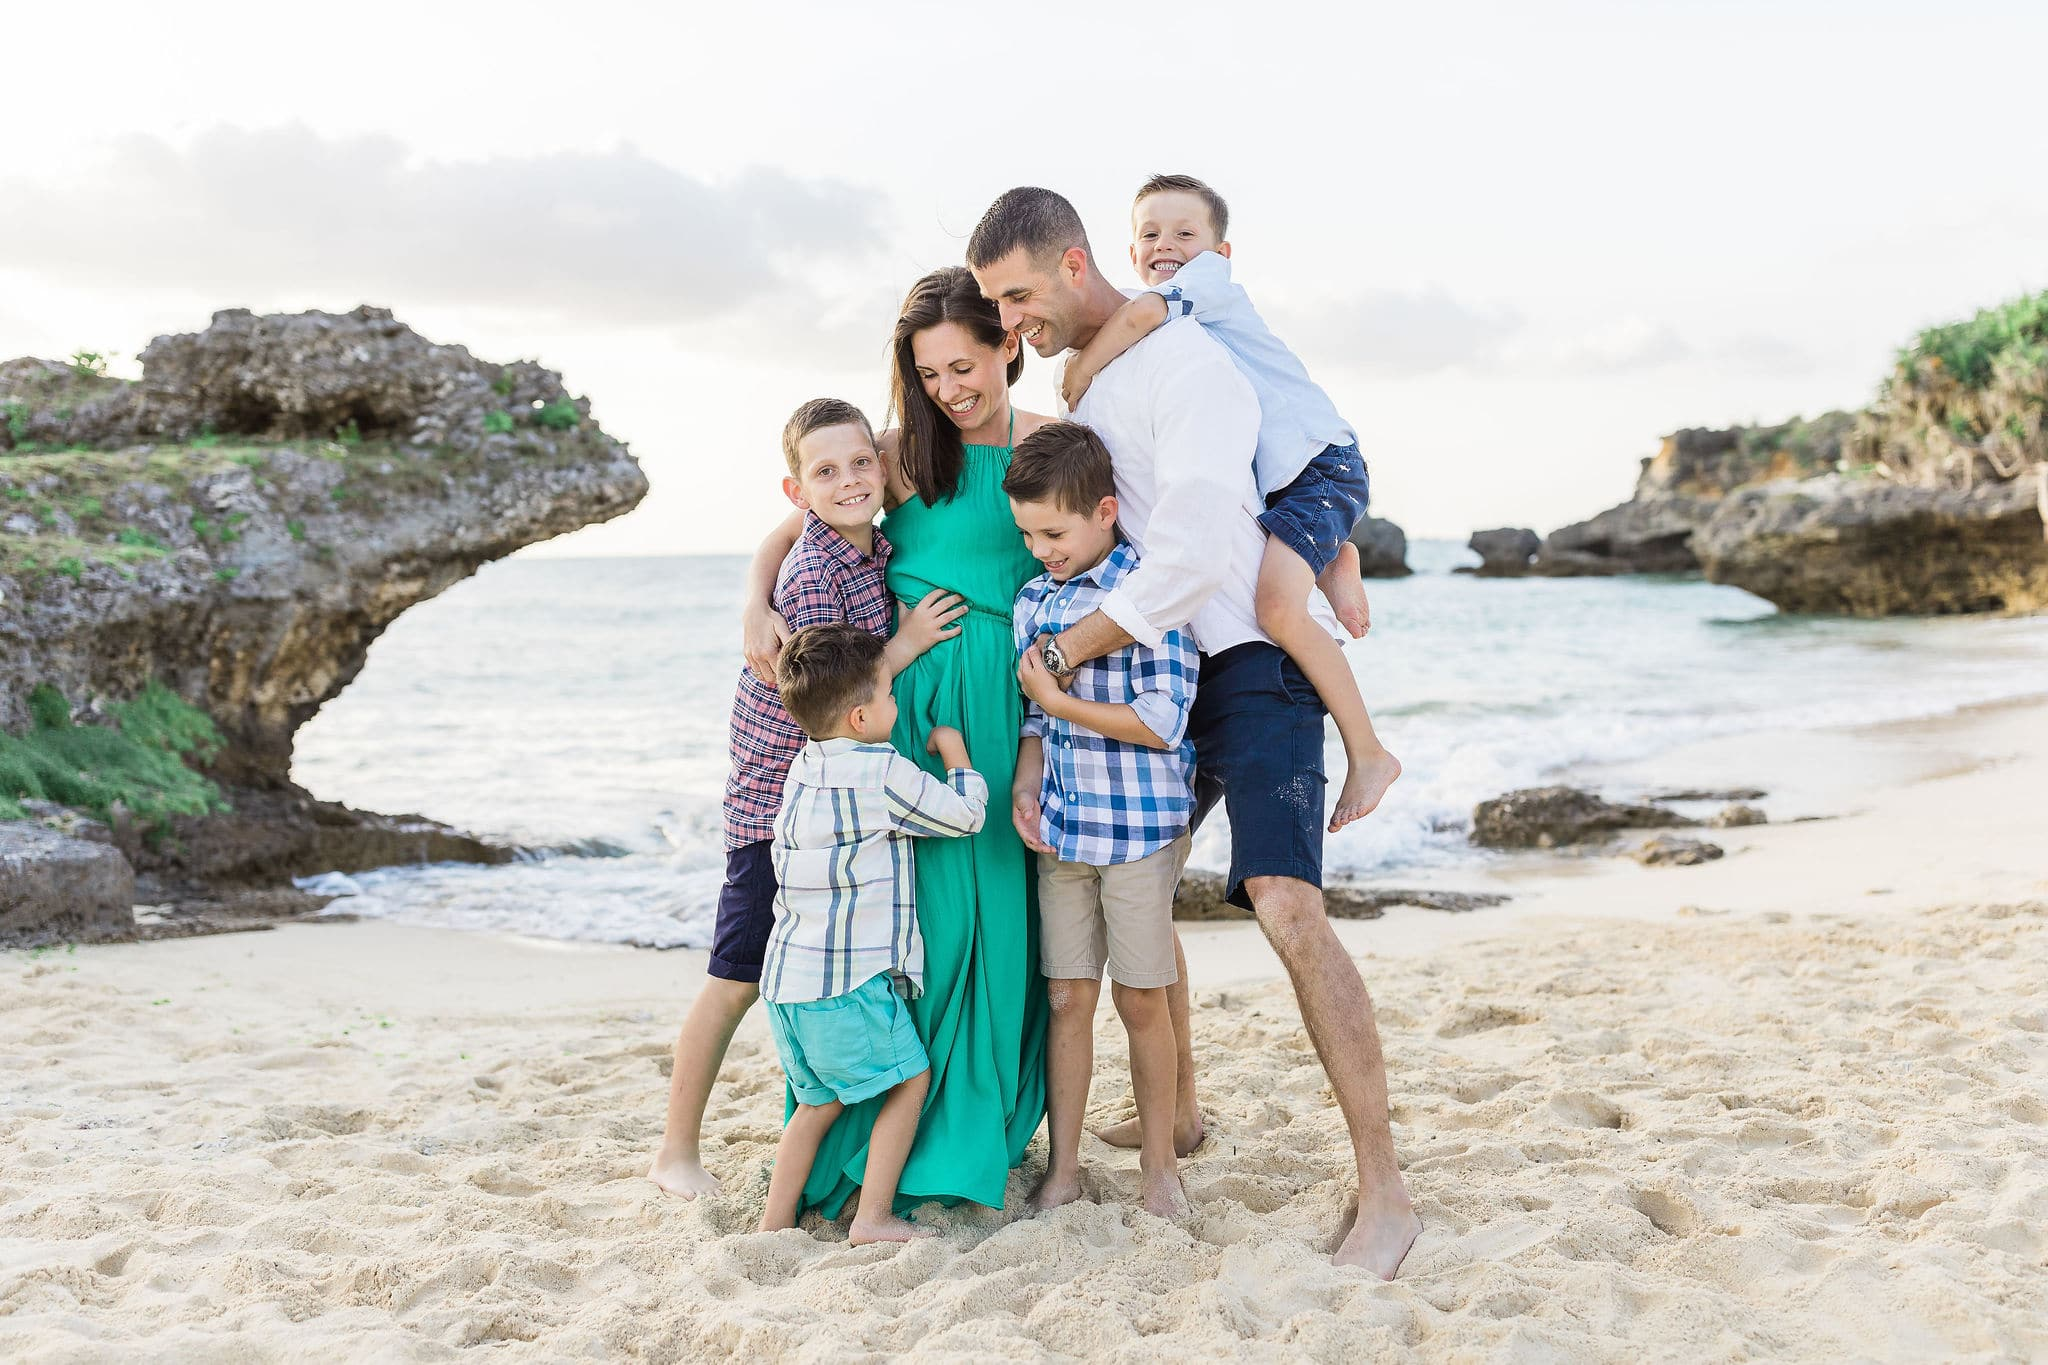 Family photo session on the beach by Heather Johnson Photography